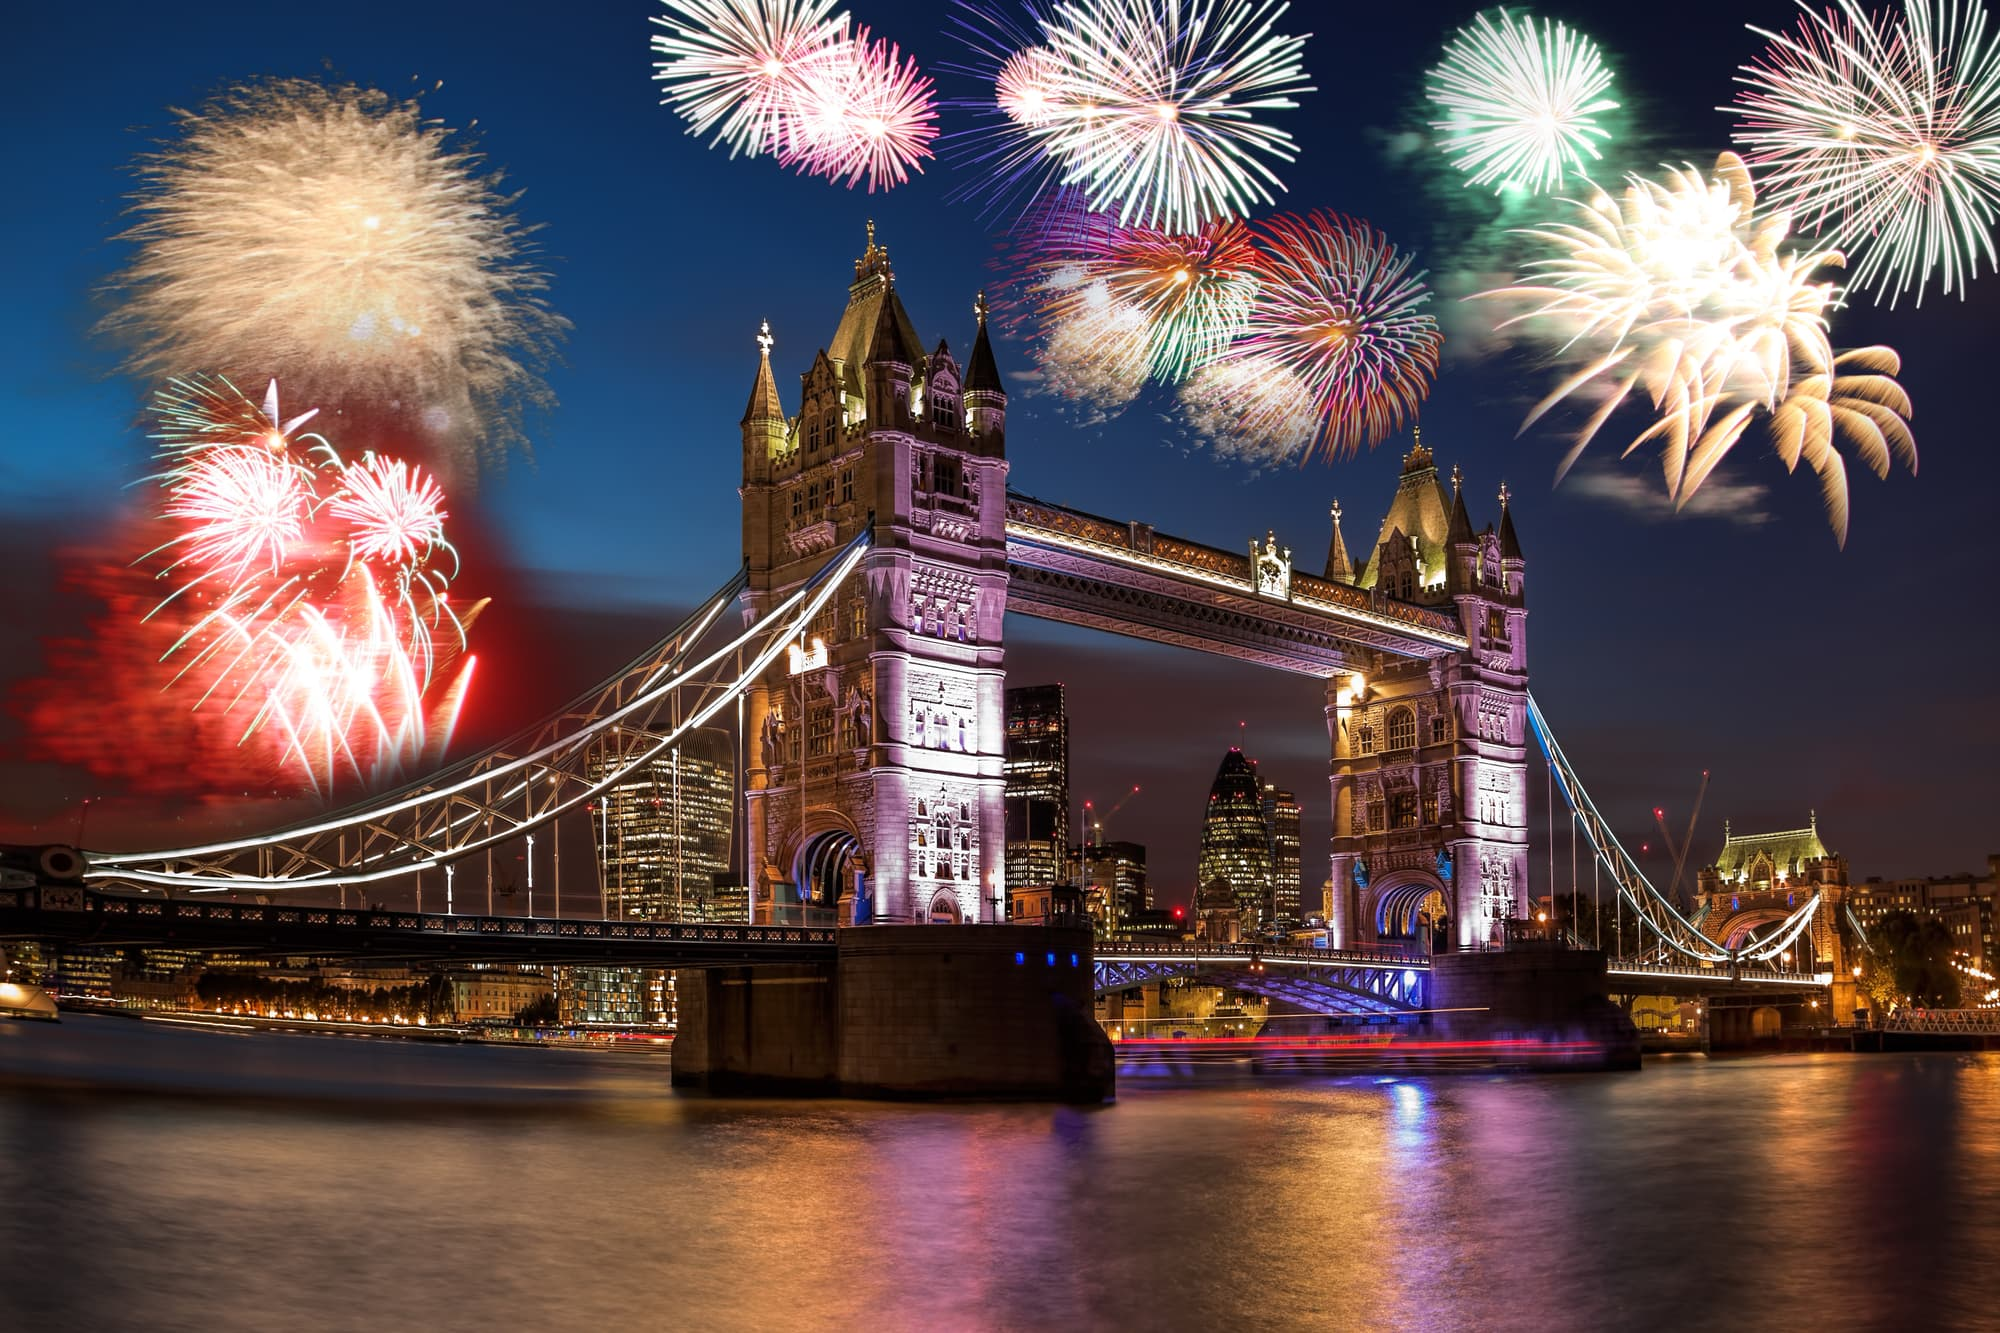 Tower Bridge with firework in London, England (celebration of Bonfire Night